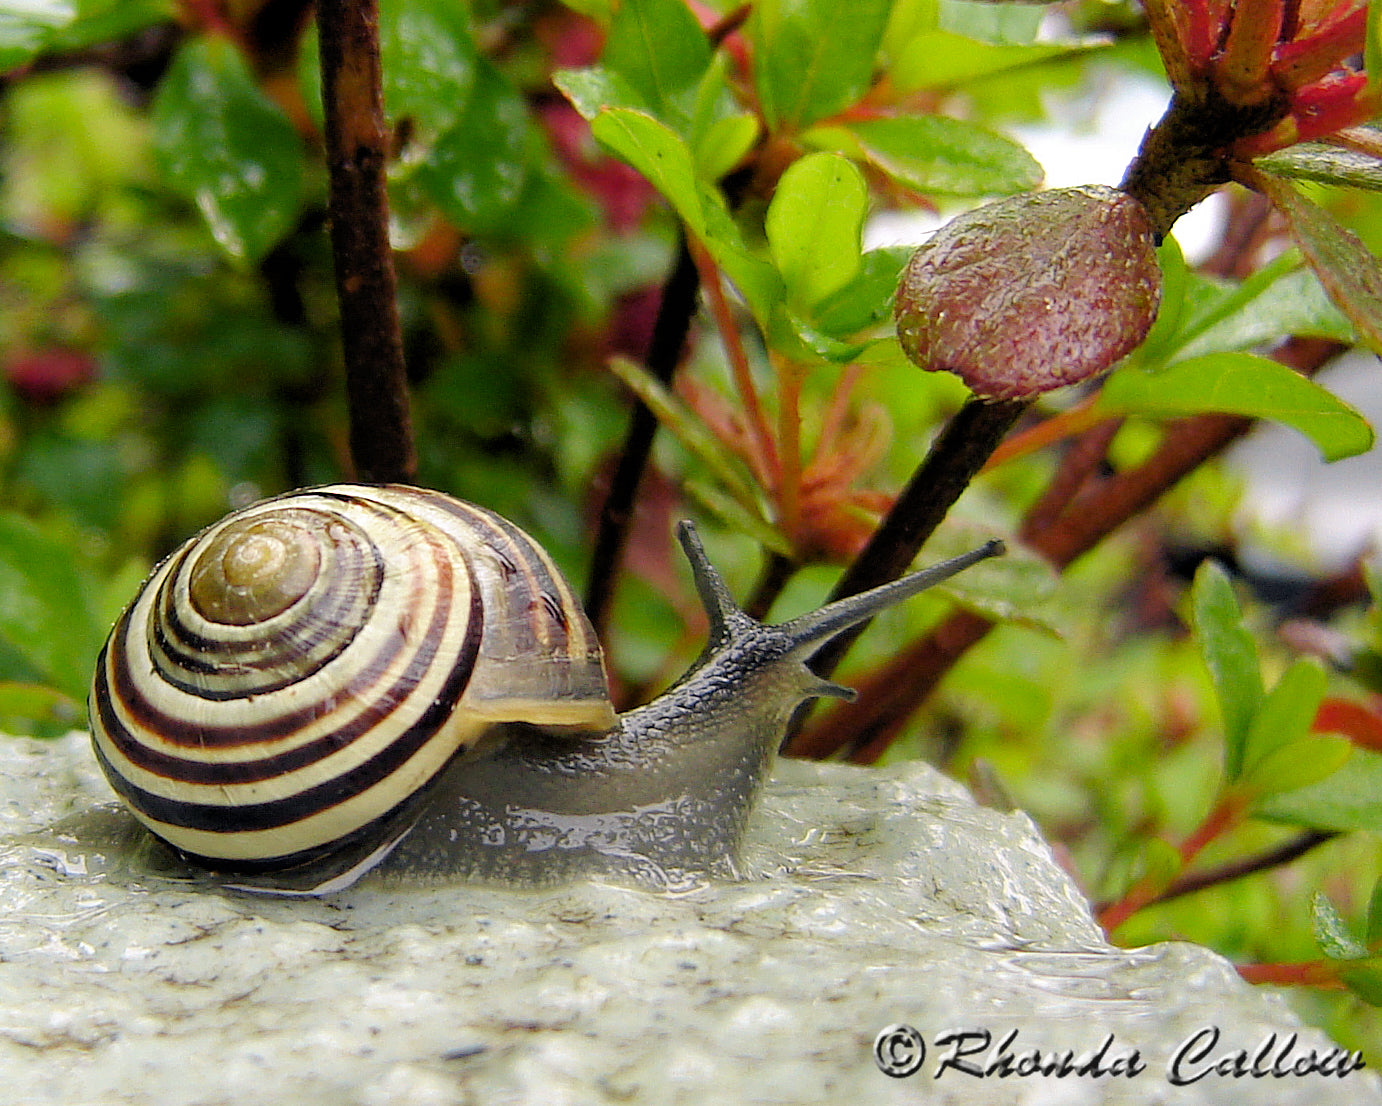 Close-up of a snail on the steps in the spring rain